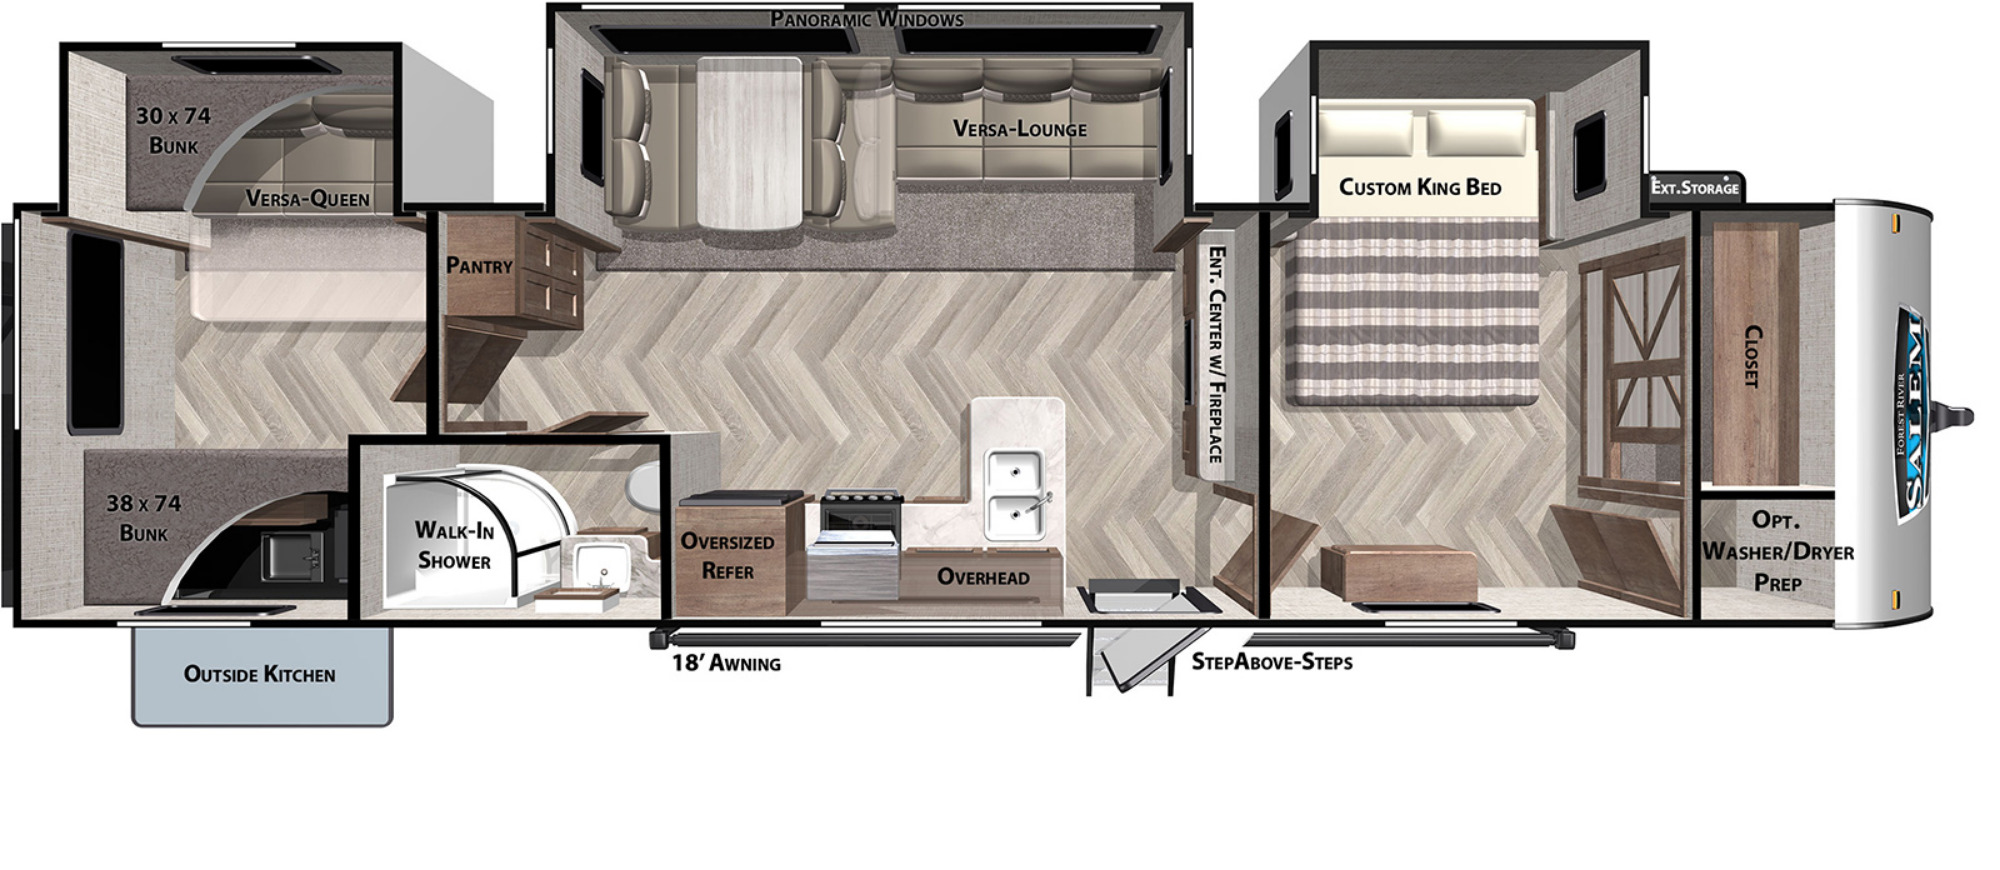 View Floor Plan for 2021 FOREST RIVER SALEM 33TS